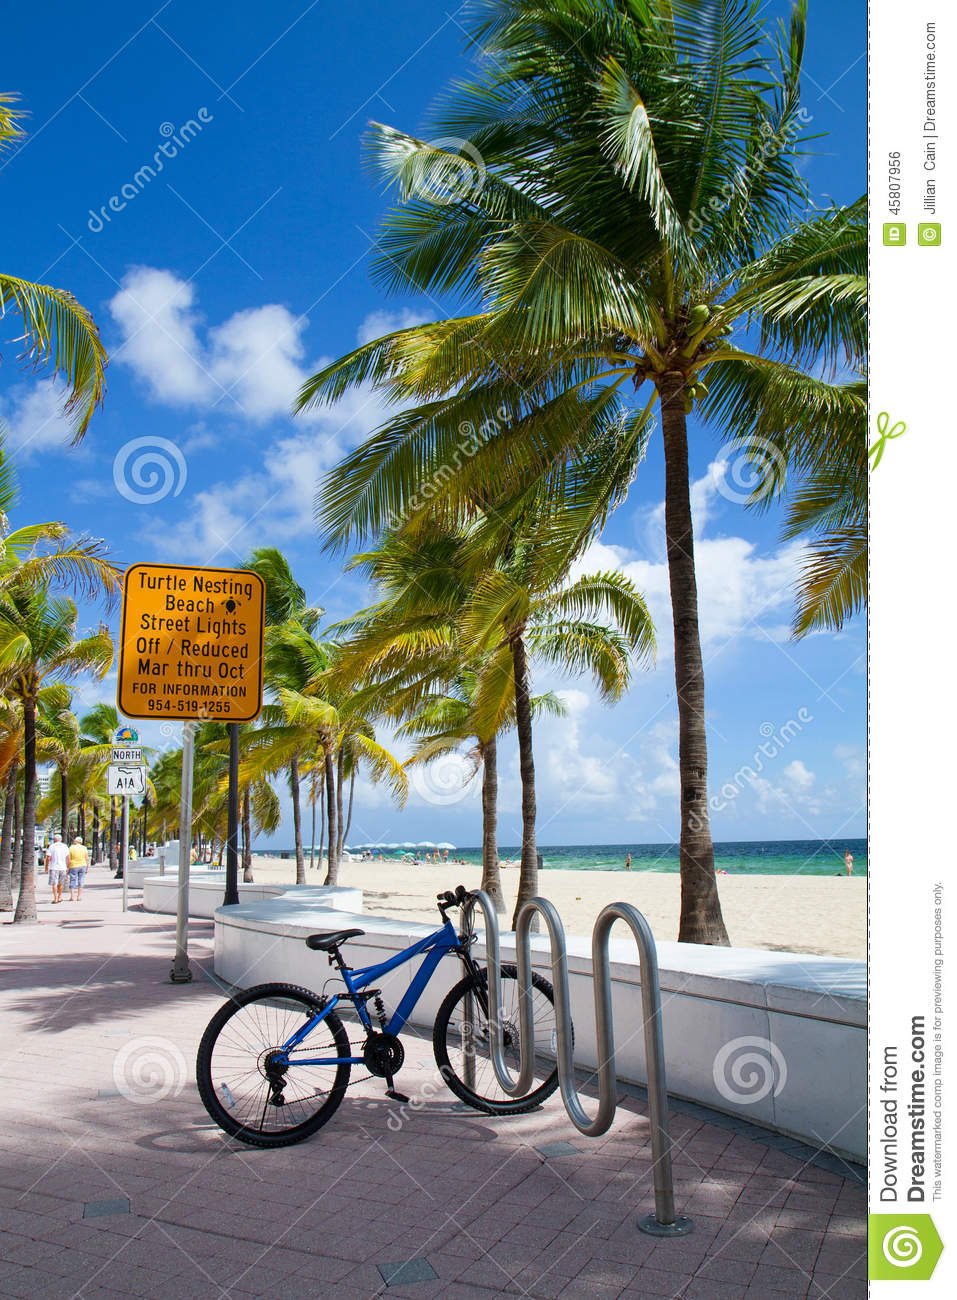 Turtle Nesting Beach, Fort Lauderdale, Florida USA Stock